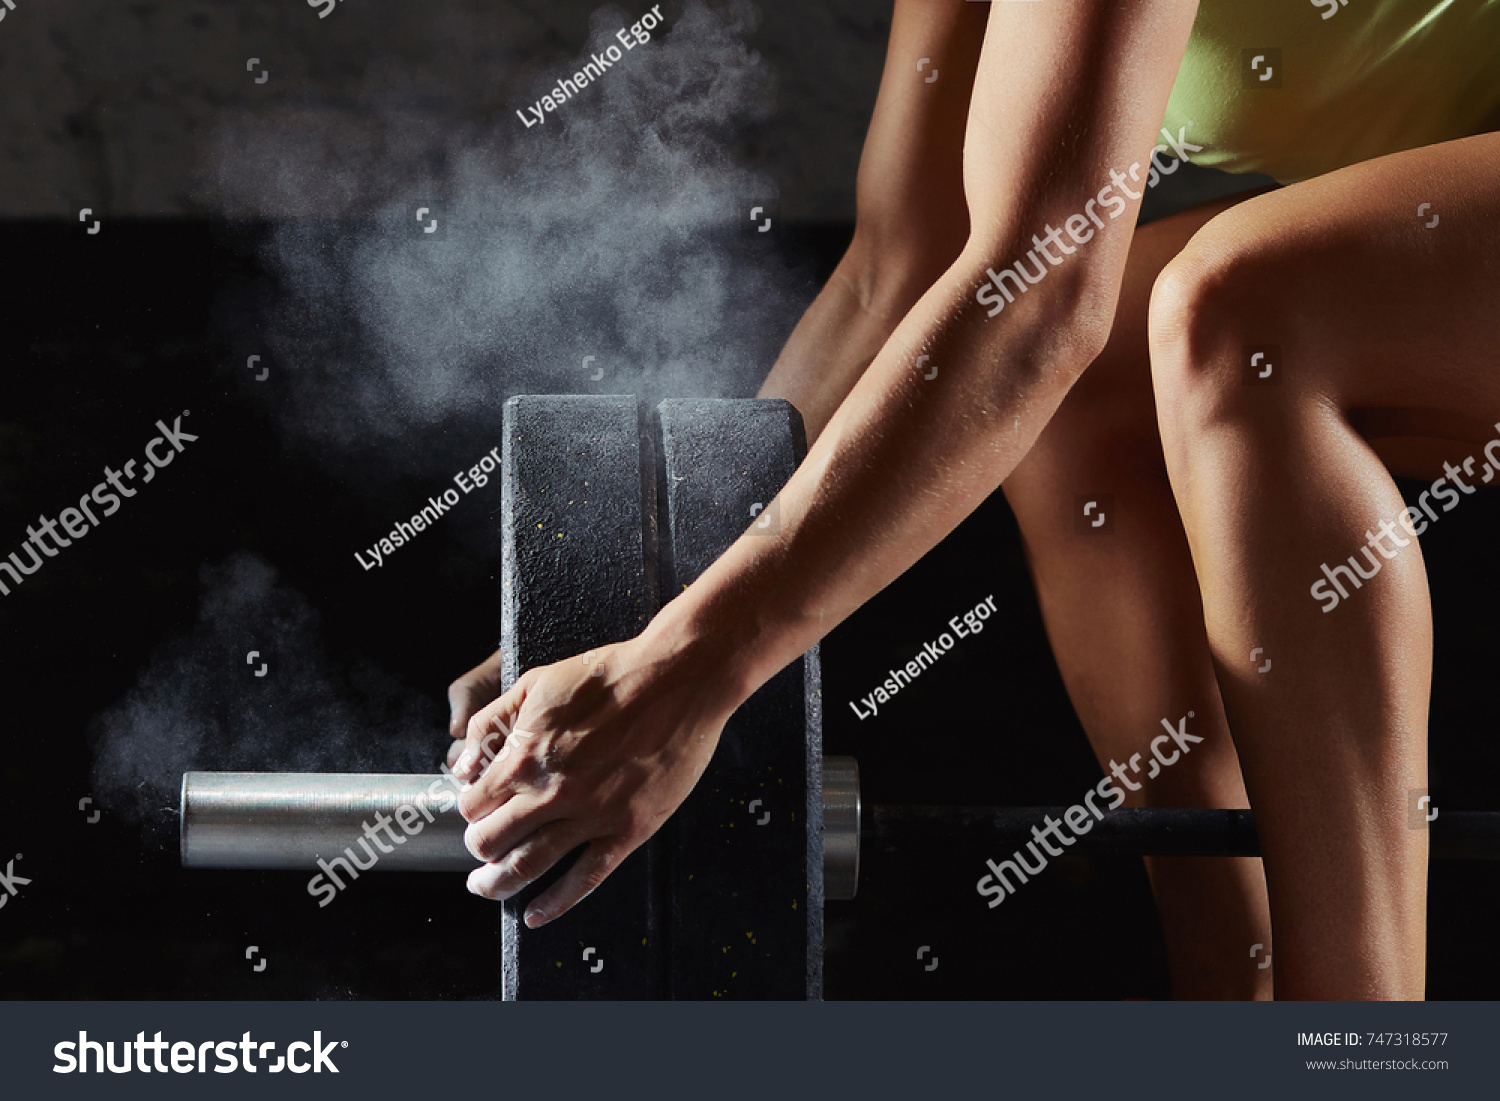 Shot of a female athlete preparing barbell for weightlifting at the gym  magnesia protection powerlifting crossfit